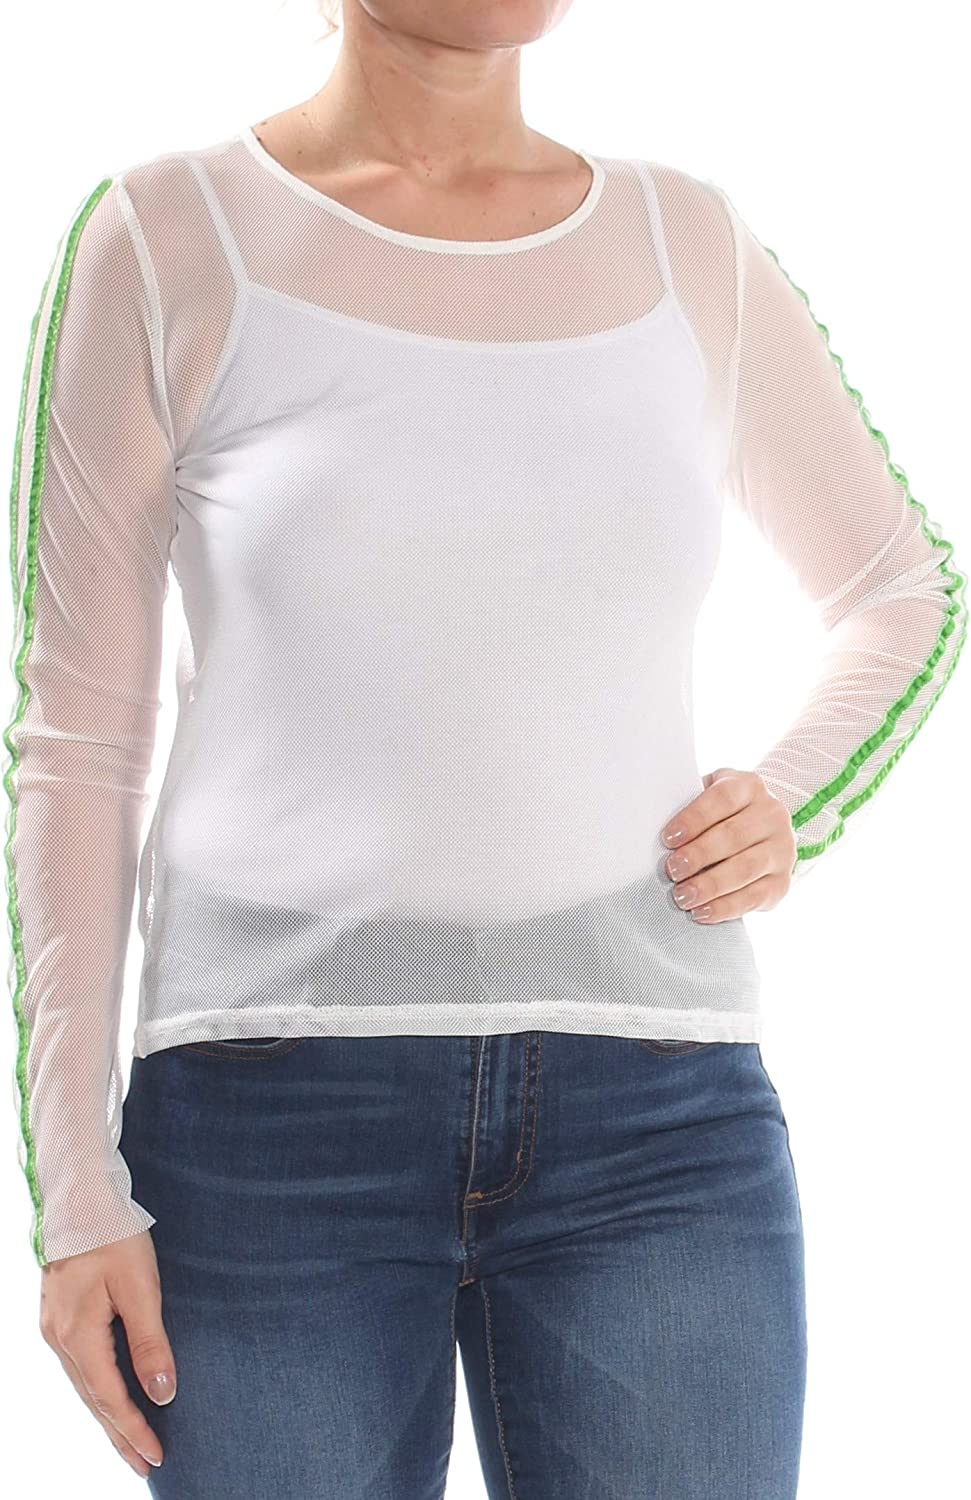 Project 28 Womens Mesh Pullover Blouse